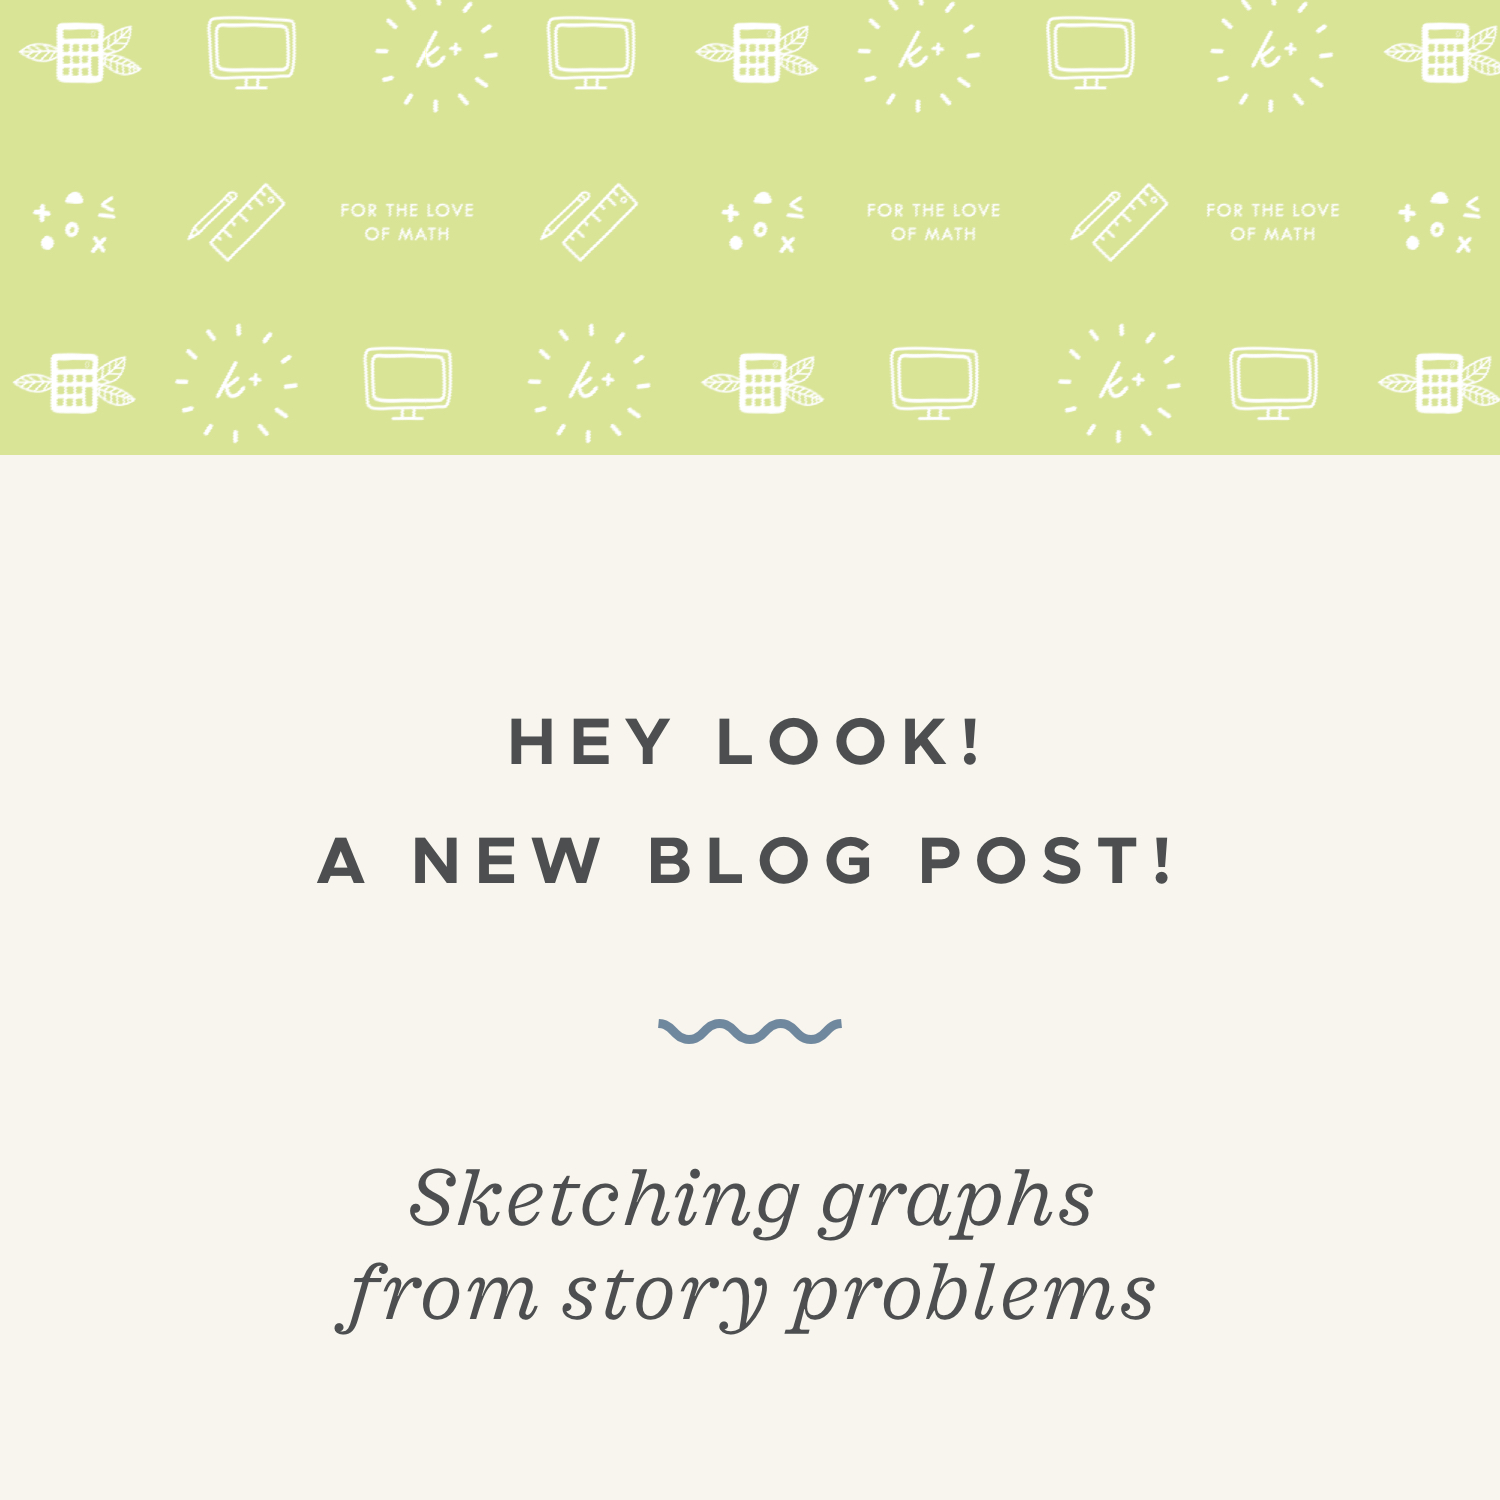 Sketching graphs from story problems blog post.jpeg